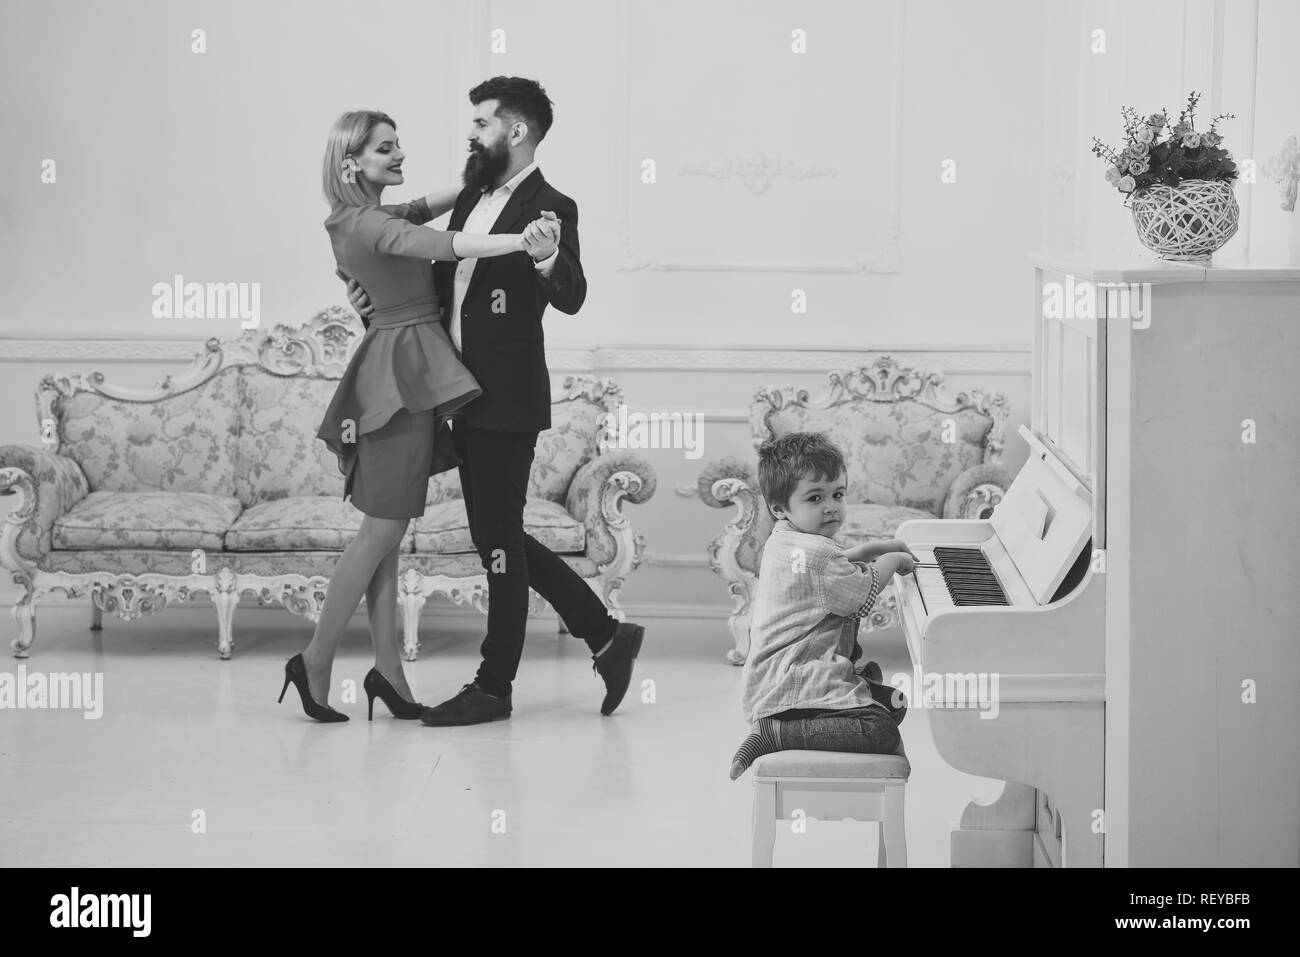 Rich parents enjoy parenthood. Boy adorable try to play piano musical instrument, while parents dancing. Child sit next to piano, play music, white interior background. Musician education concept. - Stock Image